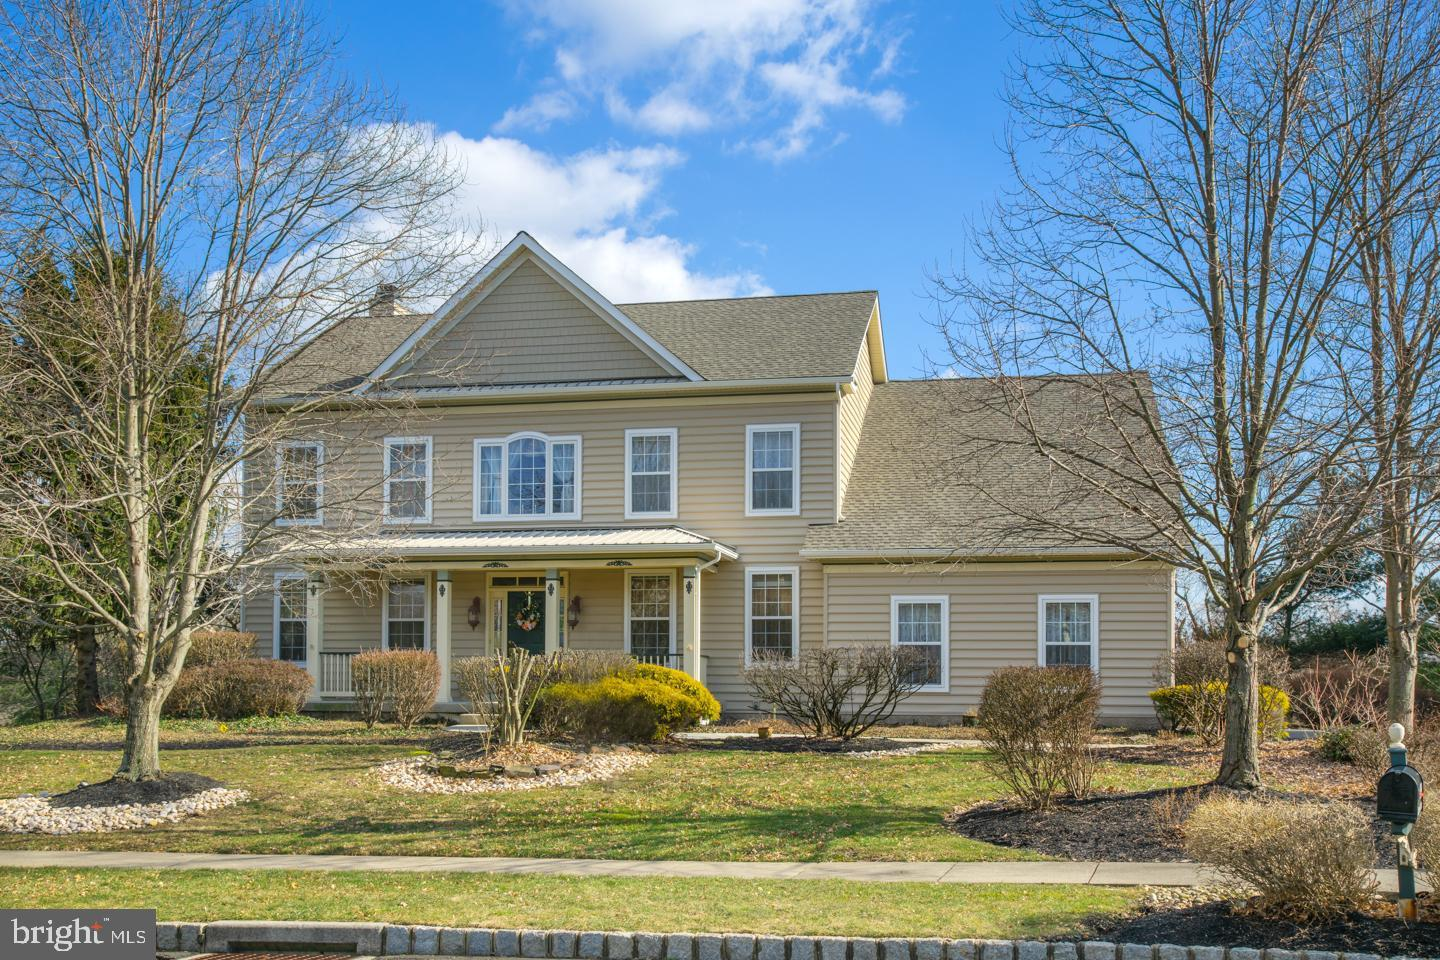 1289 CLEARVIEW DRIVE, YARDLEY, PA 19067